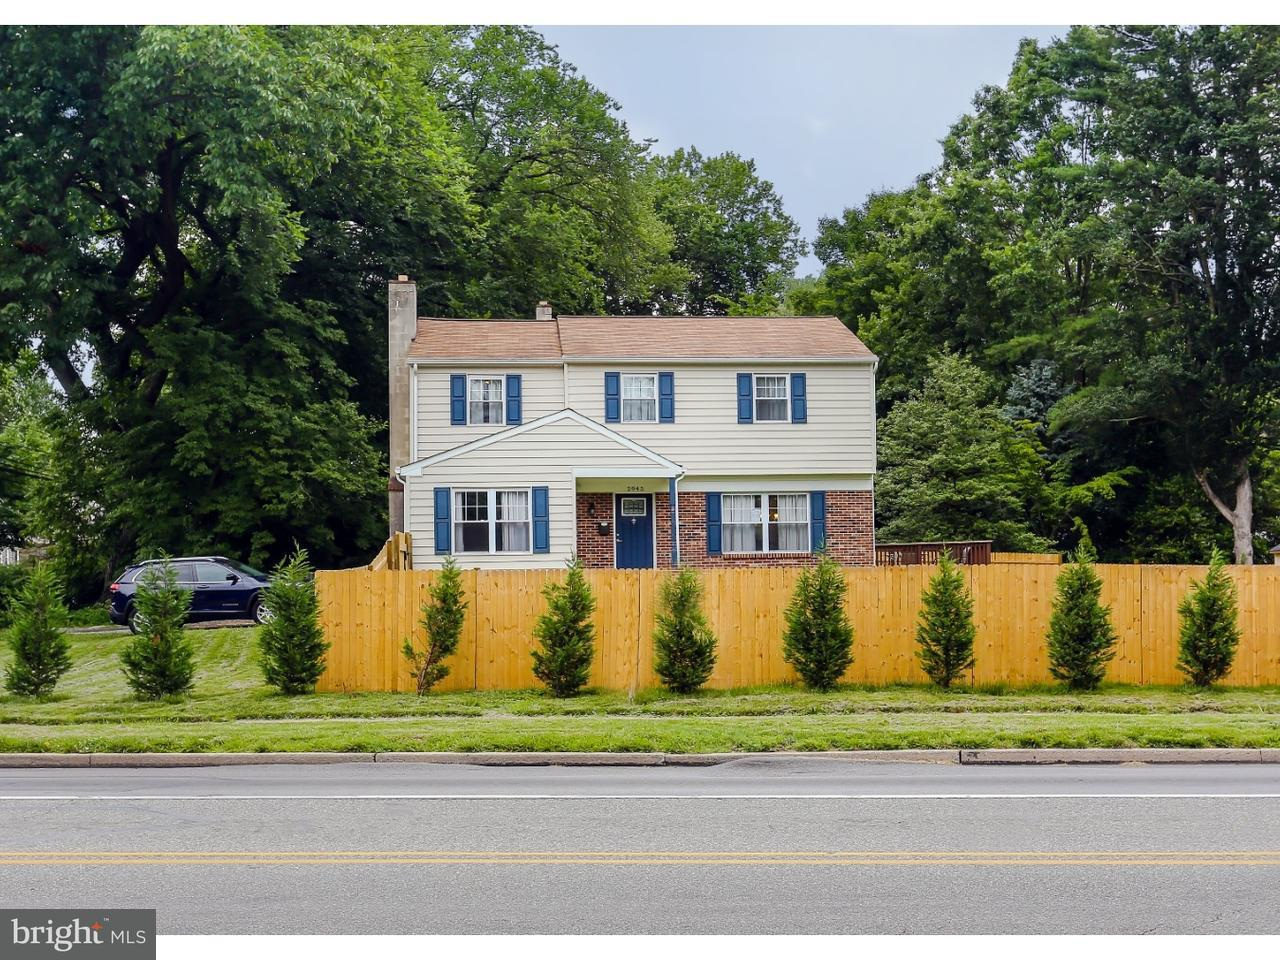 2945 Haverford Road Ardmore, PA 19003